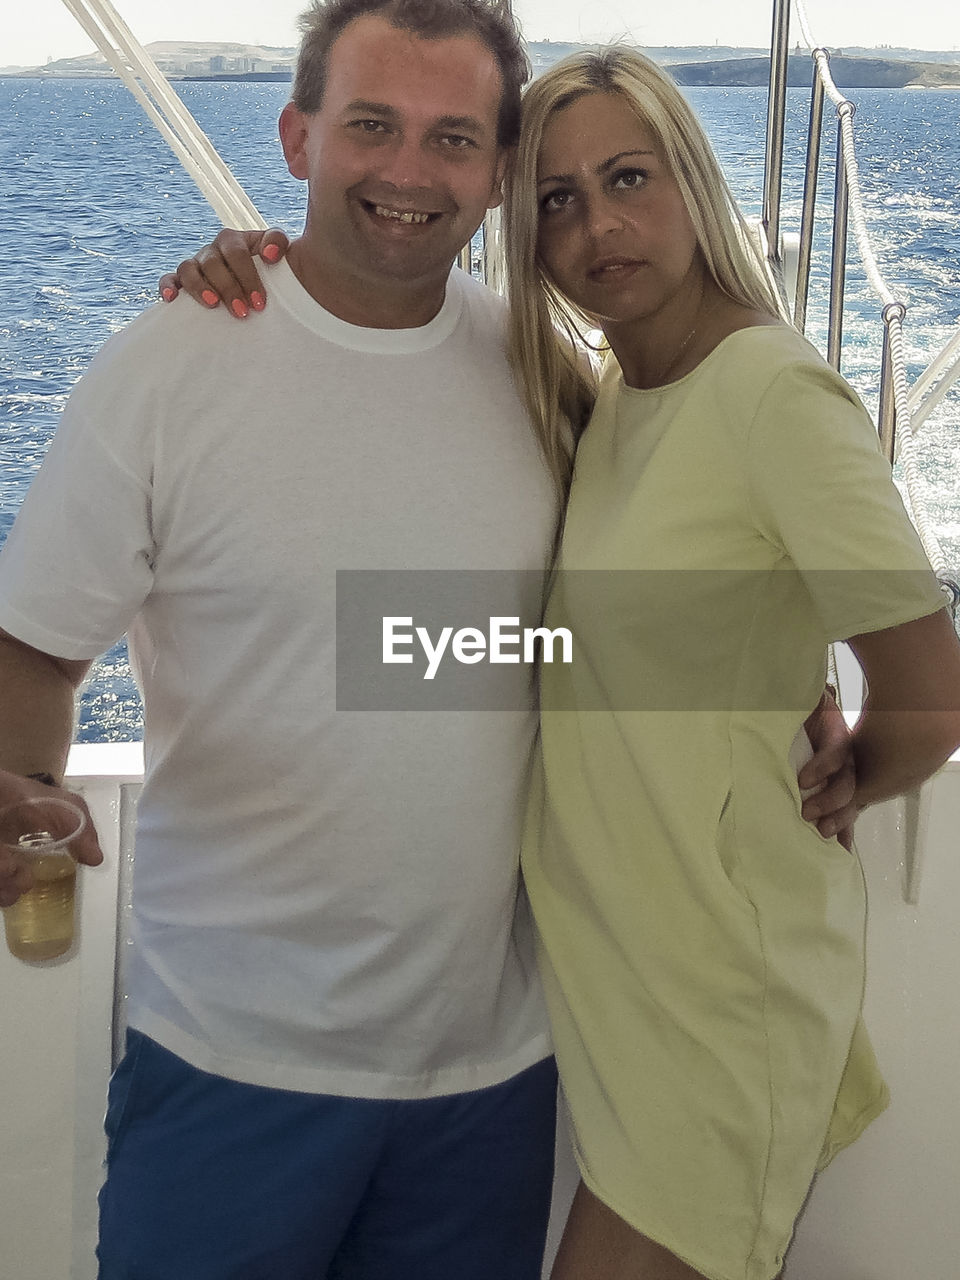 looking at camera, sea, portrait, love, nautical vessel, togetherness, happiness, smiling, two people, water, young adult, vacations, standing, leisure activity, men, young women, sailing, real people, bonding, couple - relationship, yacht, day, outdoors, yachting, people